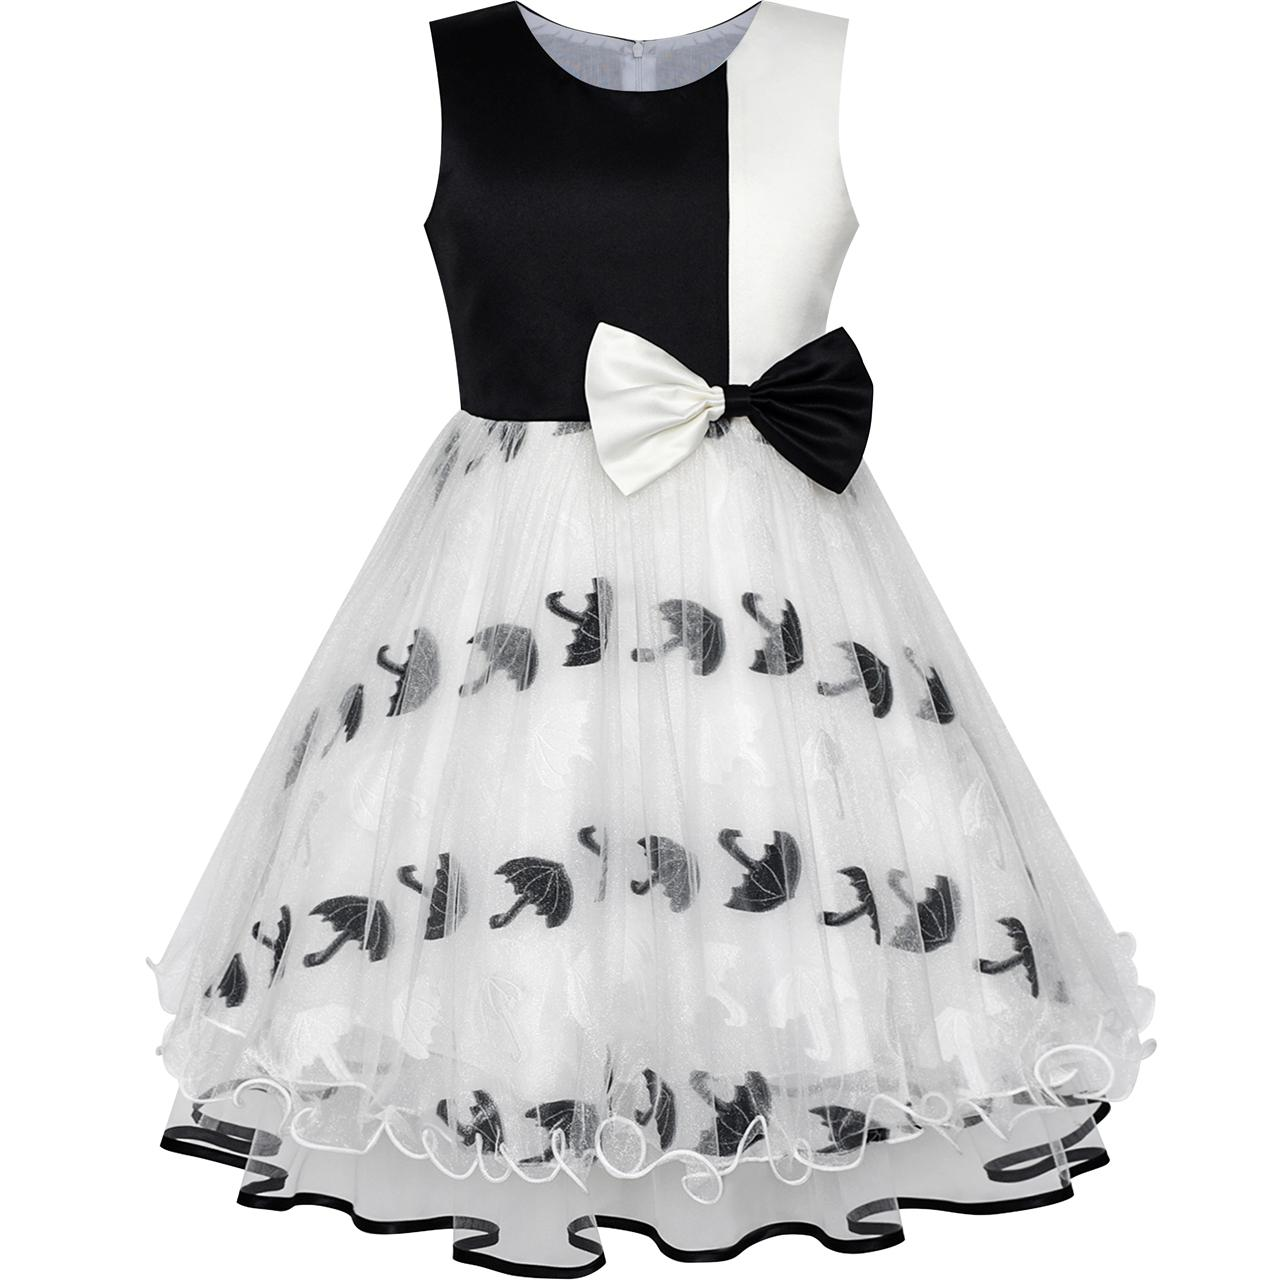 Sunny Fashion Flower Girl Dress Bow Tie Black White Color Contrast Umbrella Sundress 2018 Summer Princess Wedding Size 4-12 lit decorative cotton bow tie necklace for pet dog white black size m